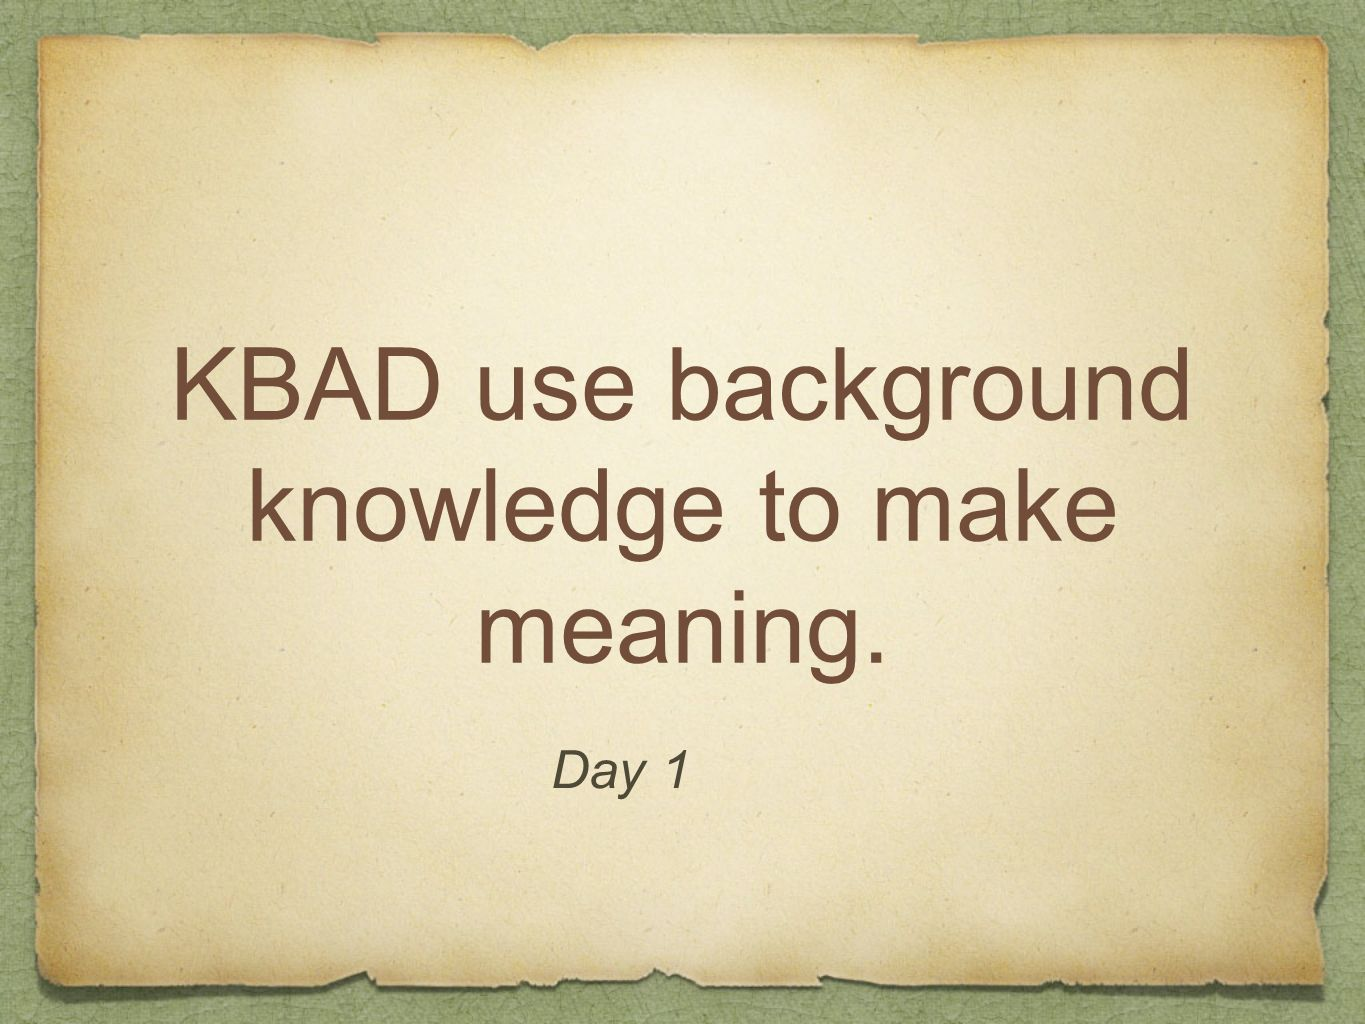 KBAD use background knowledge to make meaning.